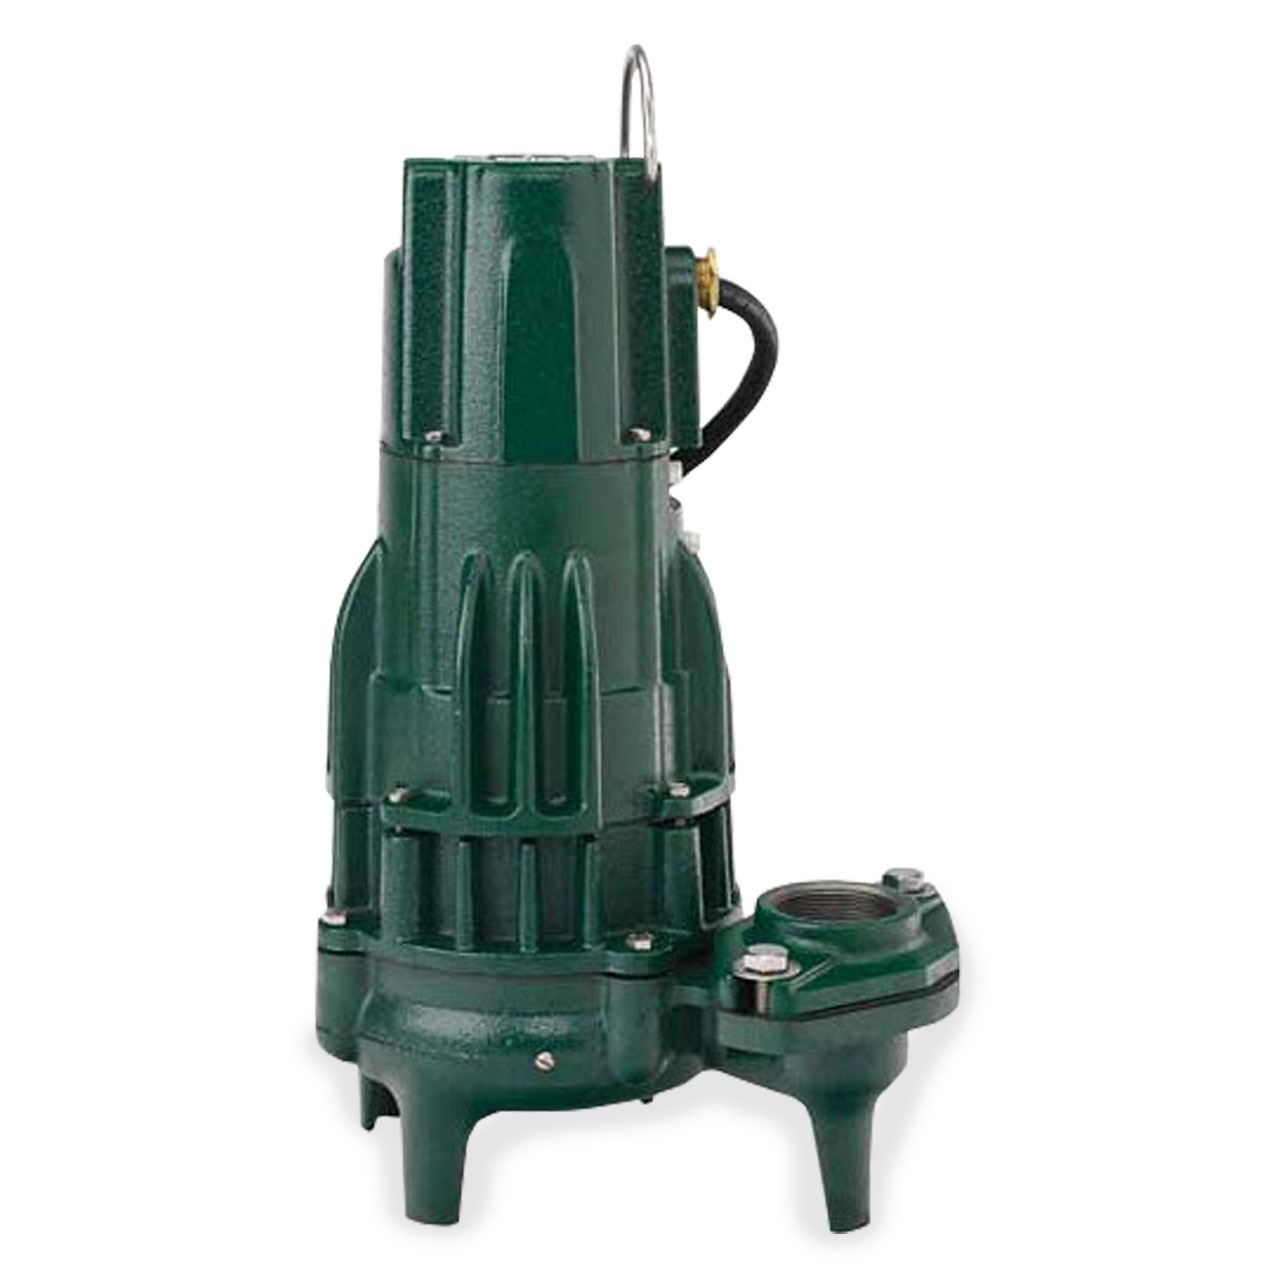 hight resolution of zoeller zoeller 295 0004 model e295 high head sewage dewatering sewer pump system zoeller submersible pump zoeller submersible pump wiring diagram